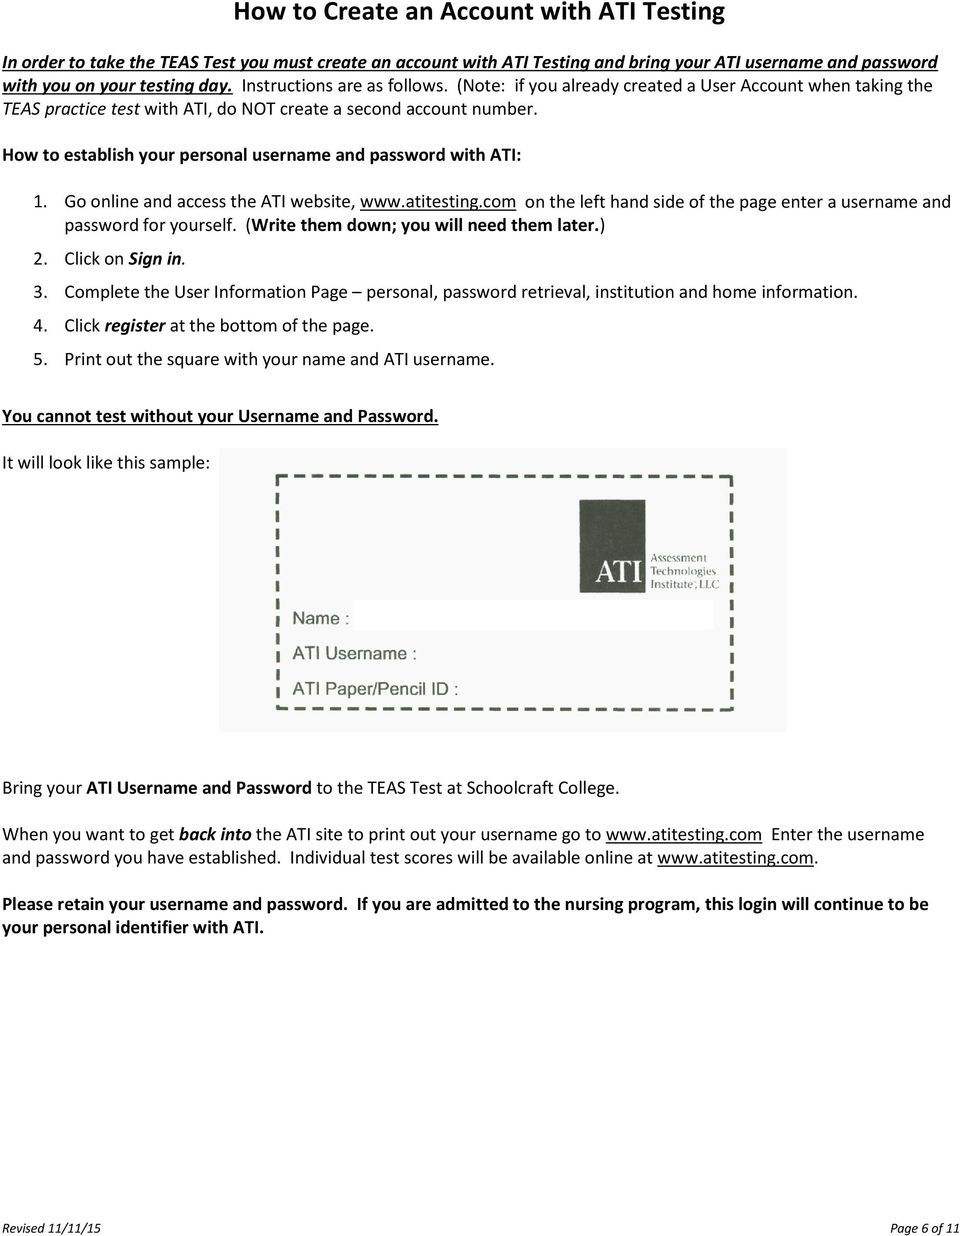 How to establish your personal username and password with ATI: 1. Go online and access the ATI website, www.atitesting.com on the left hand side of the page enter a username and password for yourself.